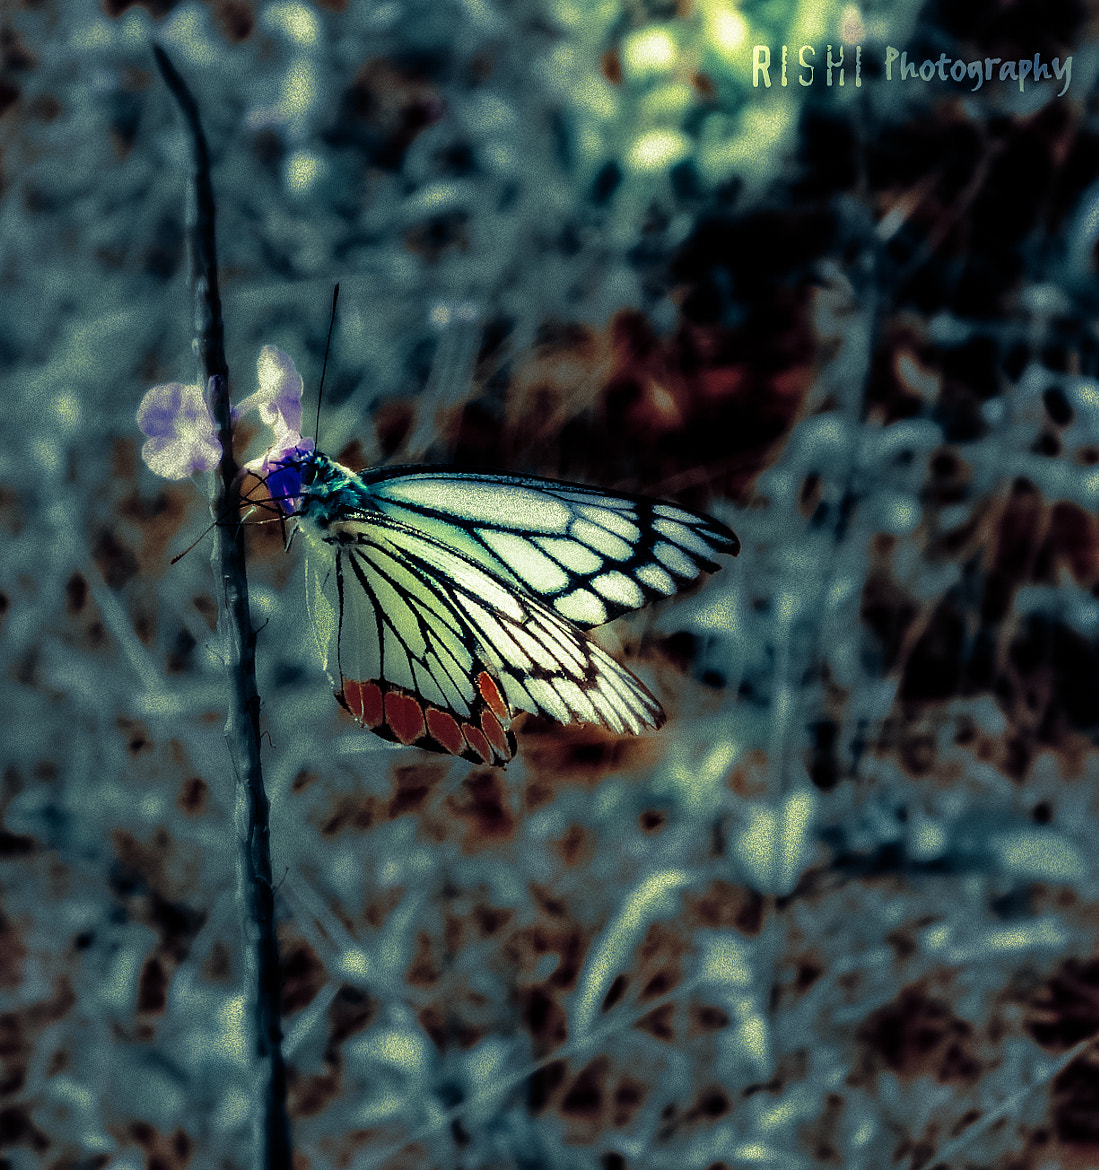 Photograph Beauty-Butterfly by Rishikeshan Pangushan on 500px